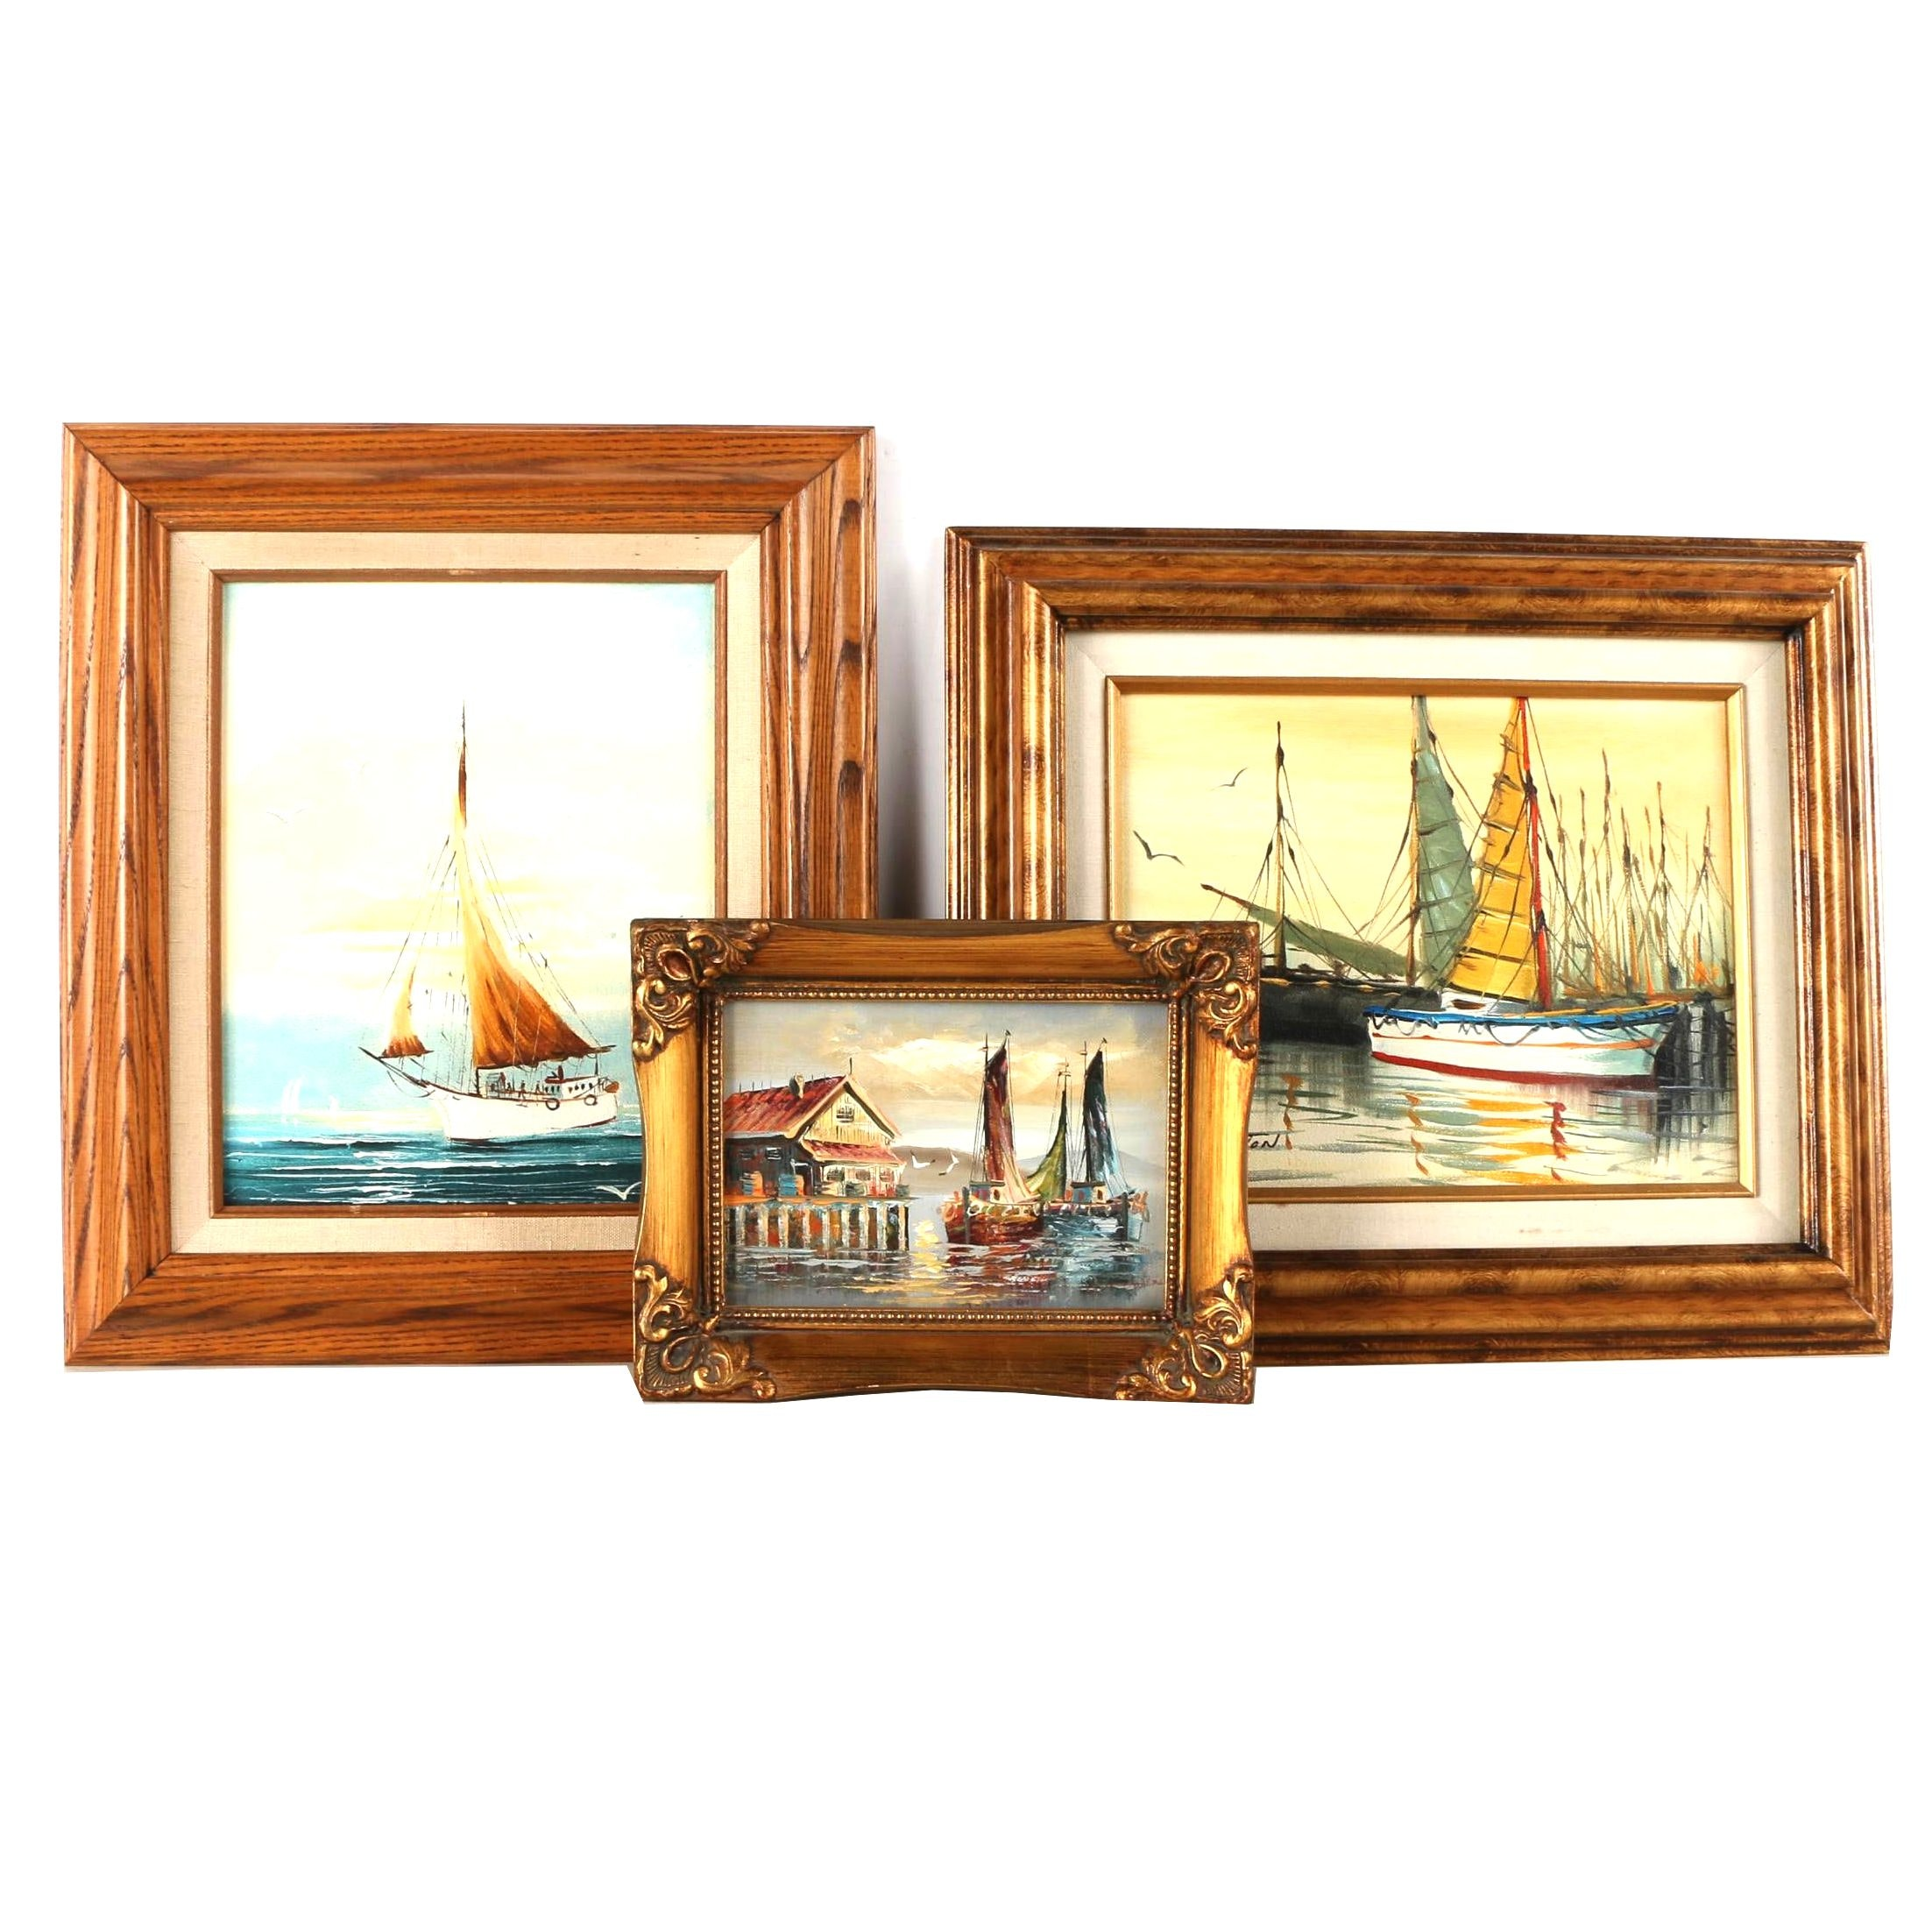 M. Hozana and S. Wooton Oil Paintings on Canvas of Sailboats